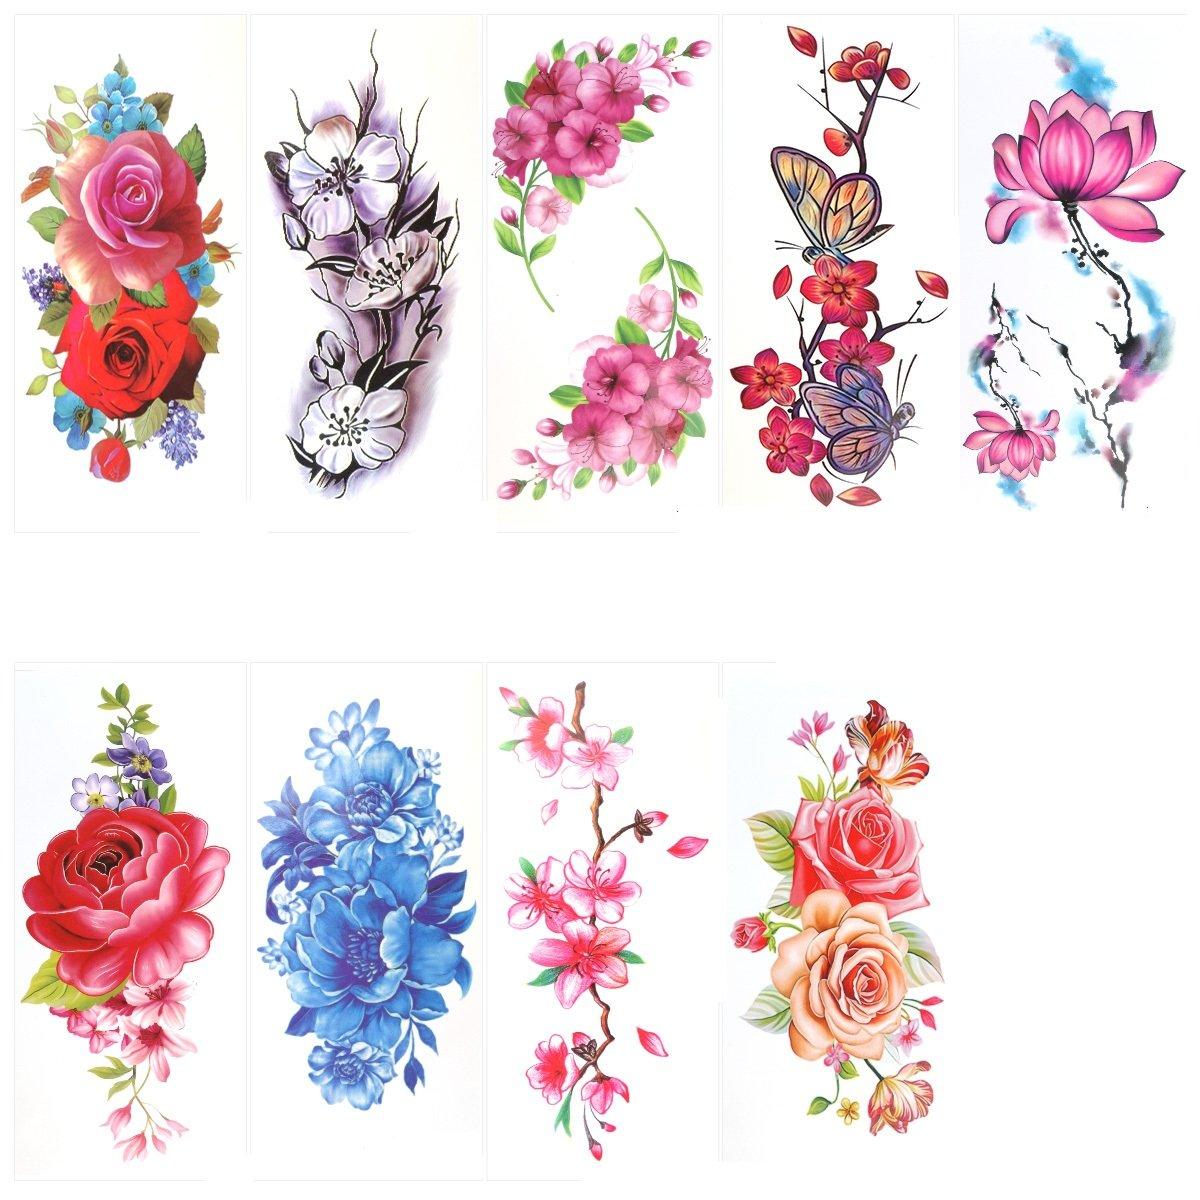 Flower Temporary Tattoos Stickers Lotus Cherry Blossoms Temporary Sleeve Tattoo Pack of 9 Sheets